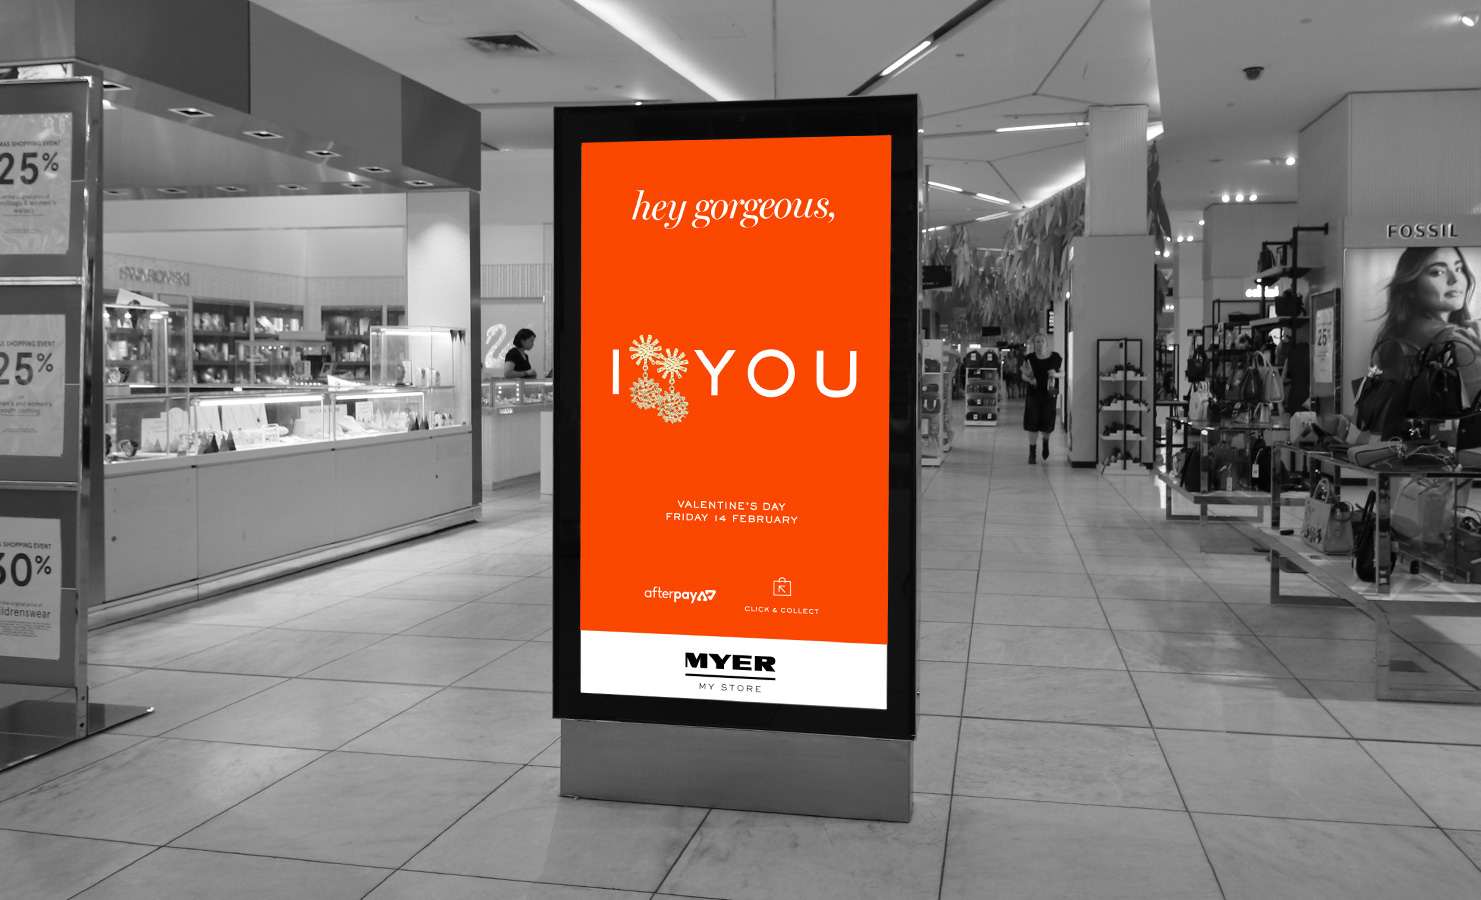 Myer Valentines Day In-Store Advertising POS